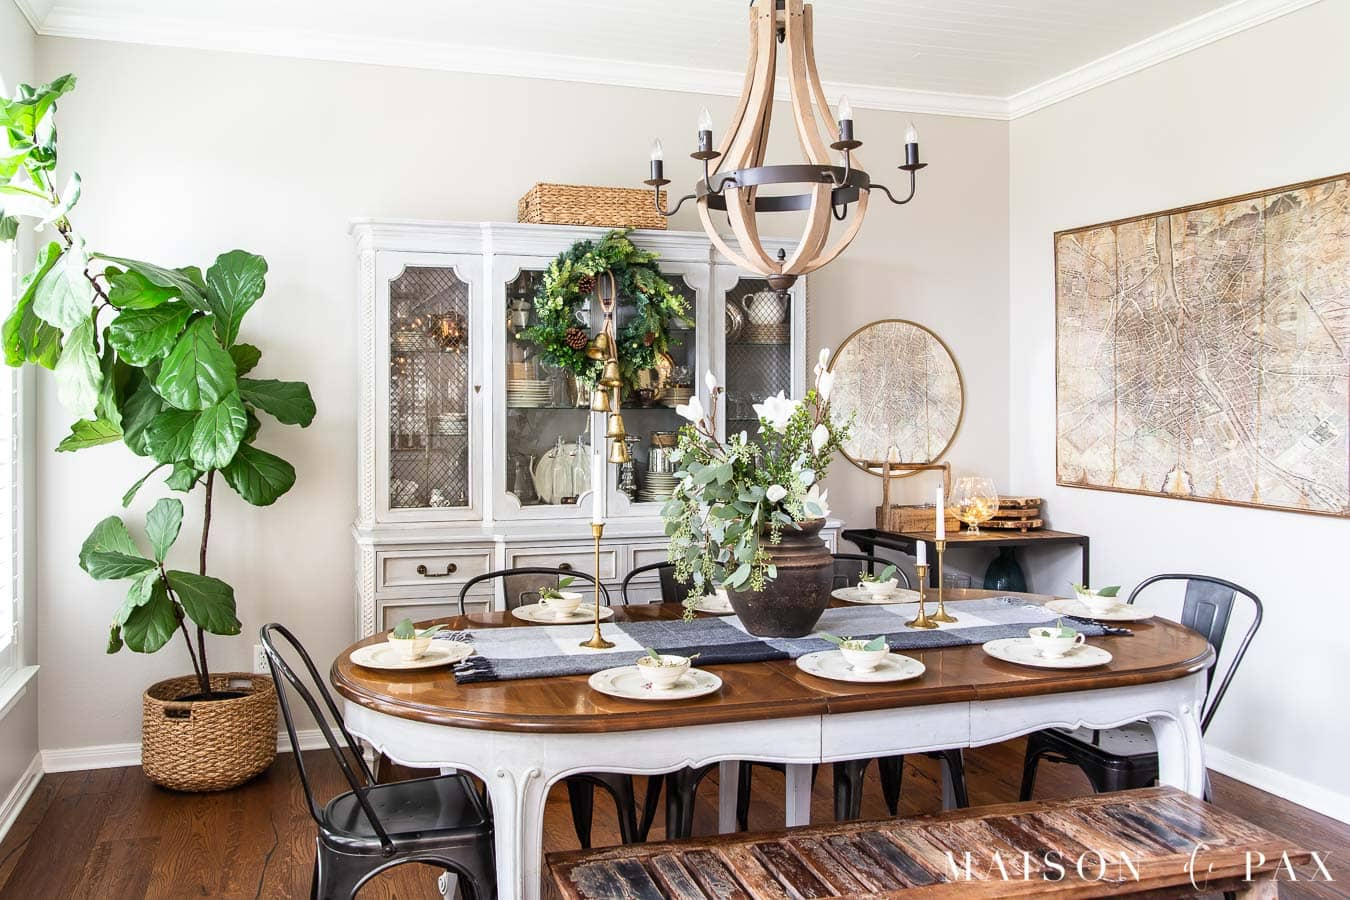 french farmhouse dining room with holiday decor | Maison de Pax